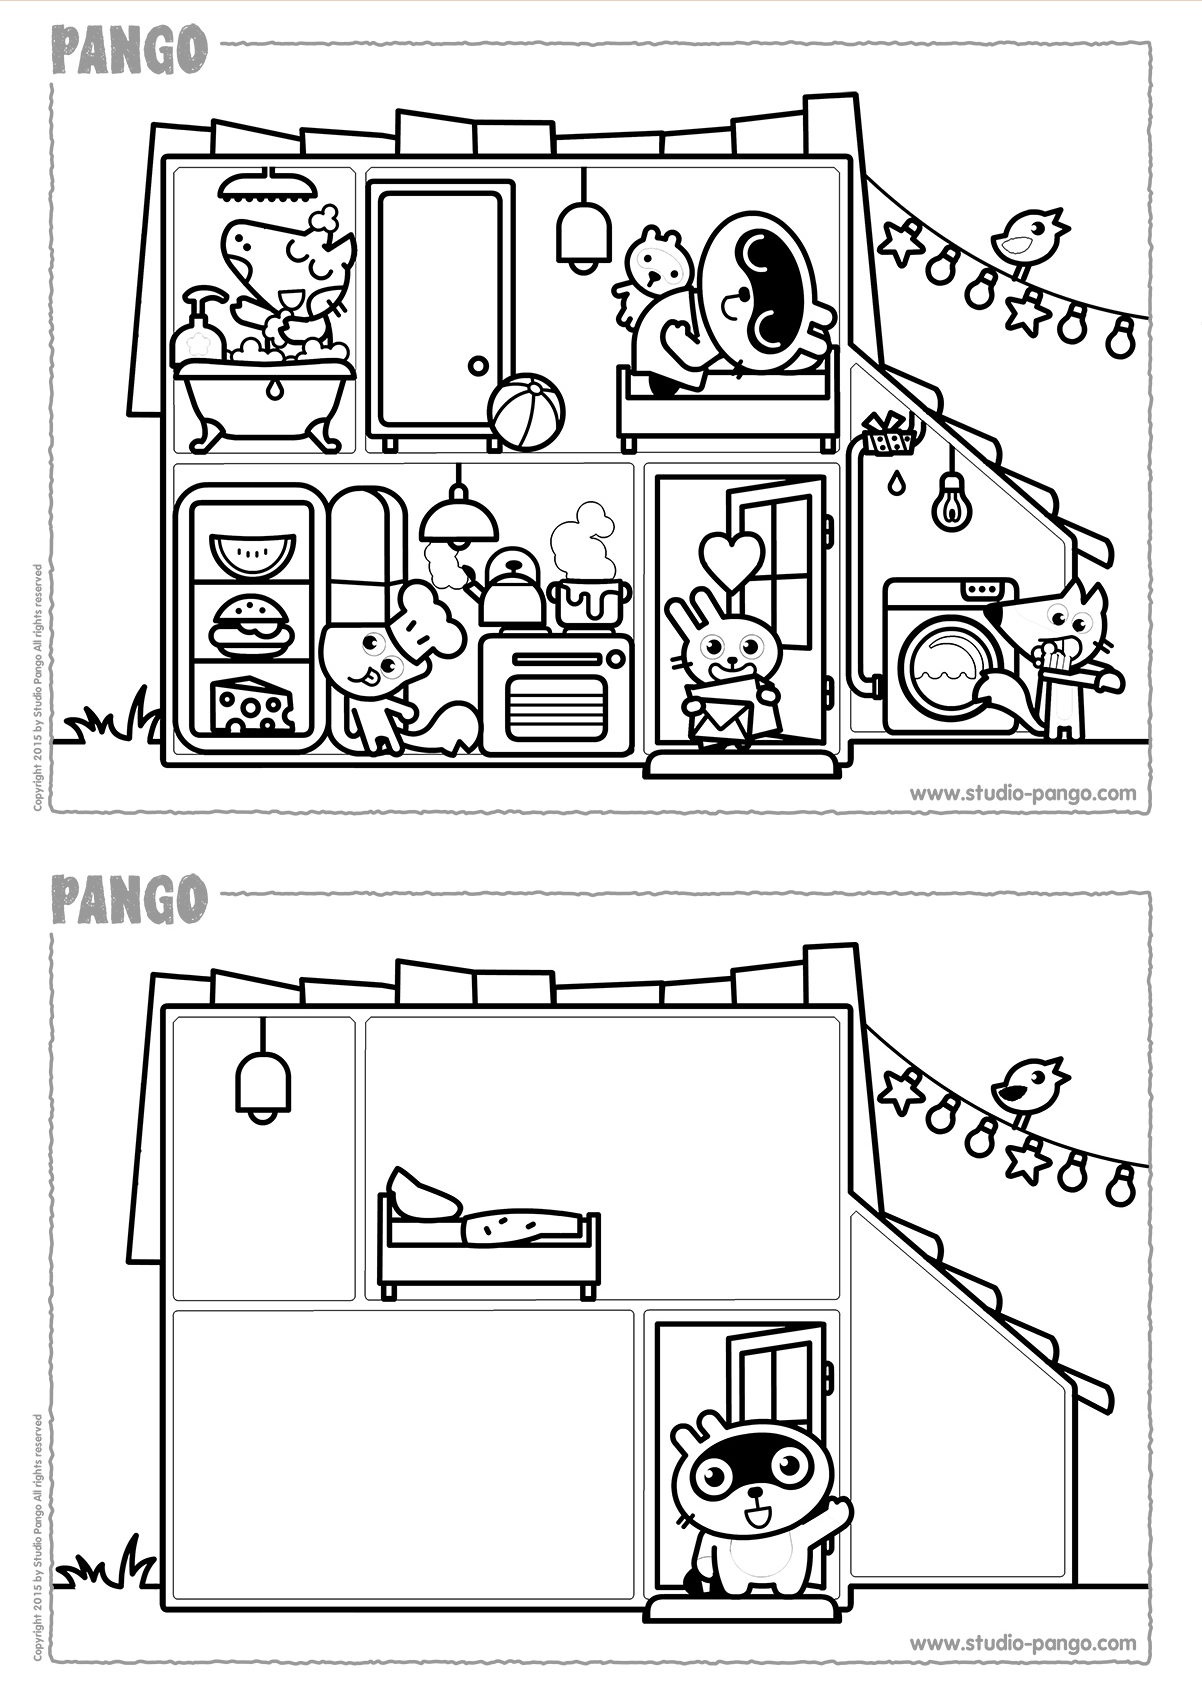 Pango S House Coloring Drawing